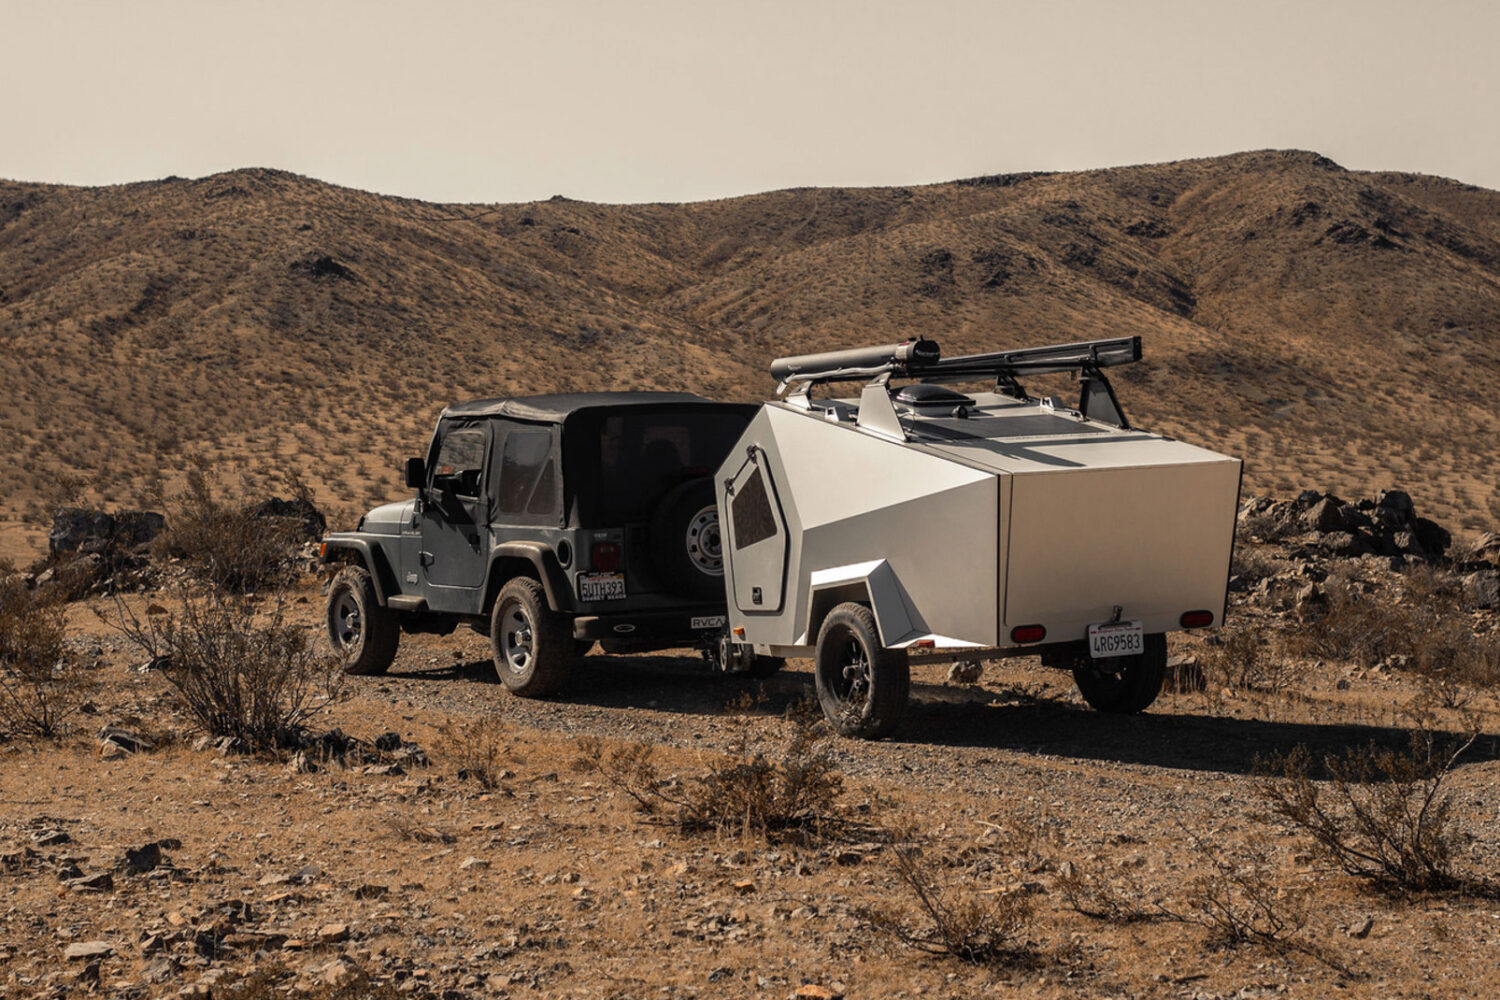 Polydrop P17A Travel trailer on a jeep